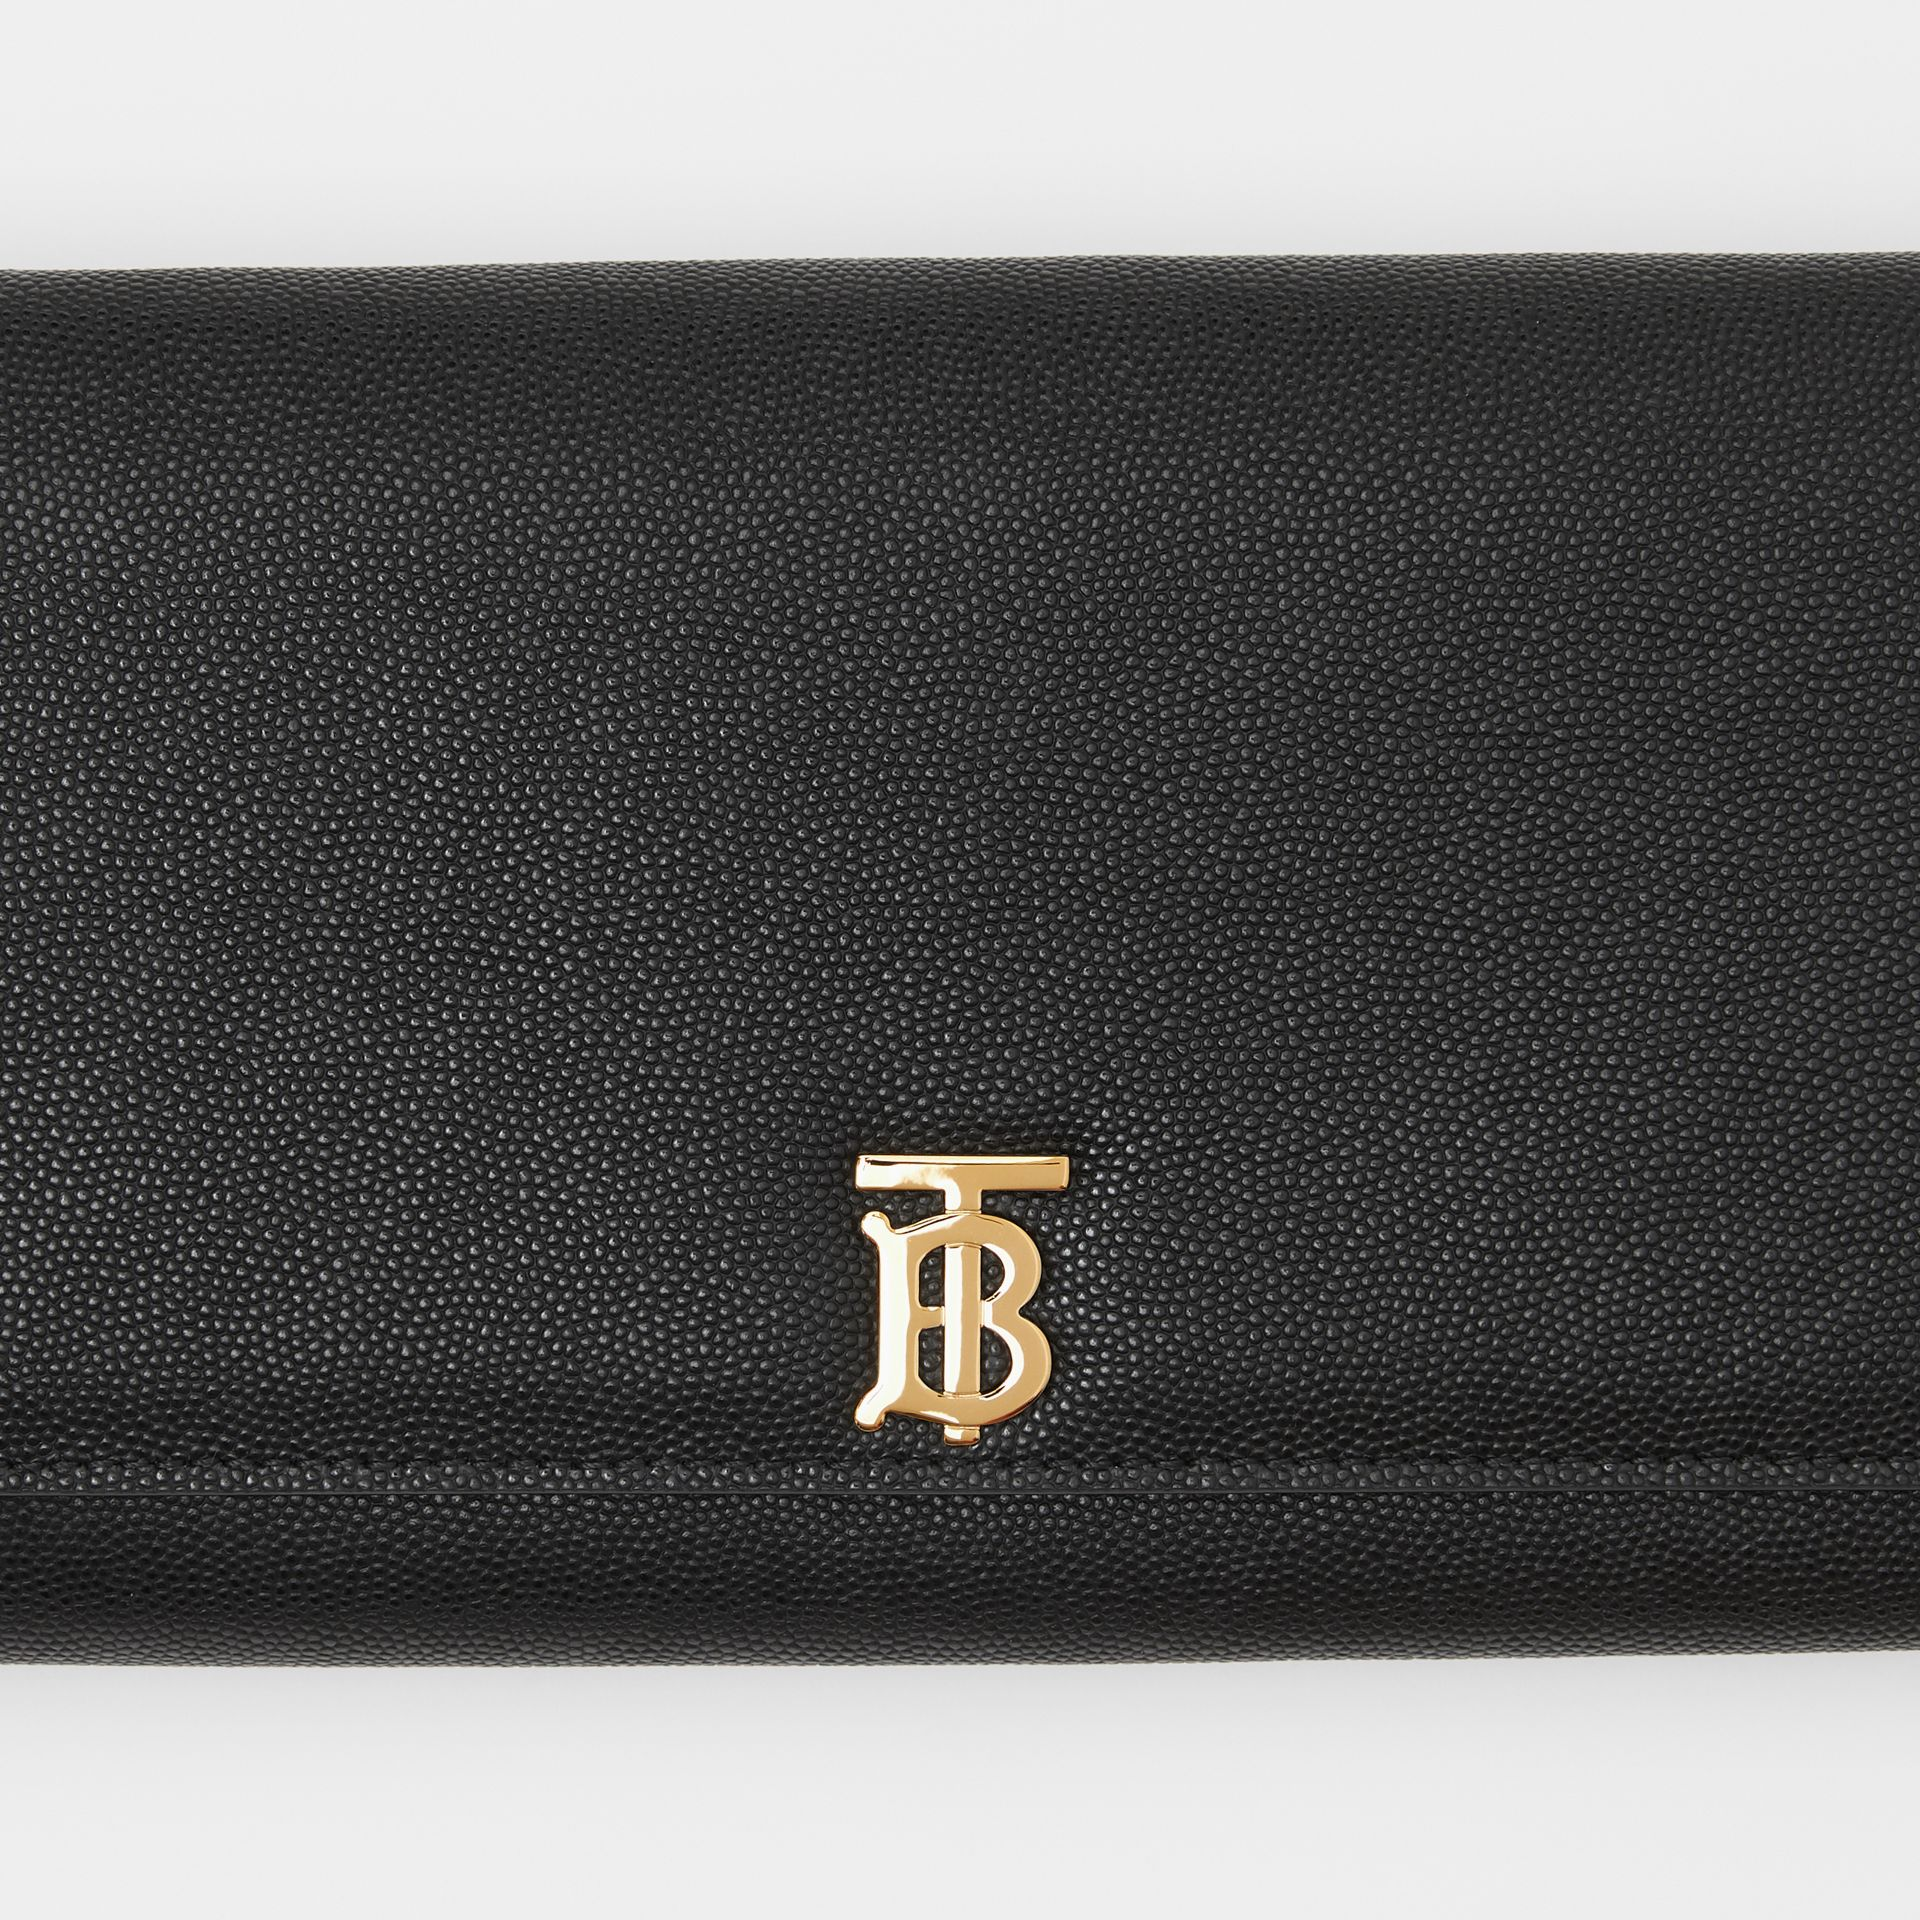 Monogram Motif Leather Wallet with Detachable Strap in Black - Women | Burberry United Kingdom - gallery image 1